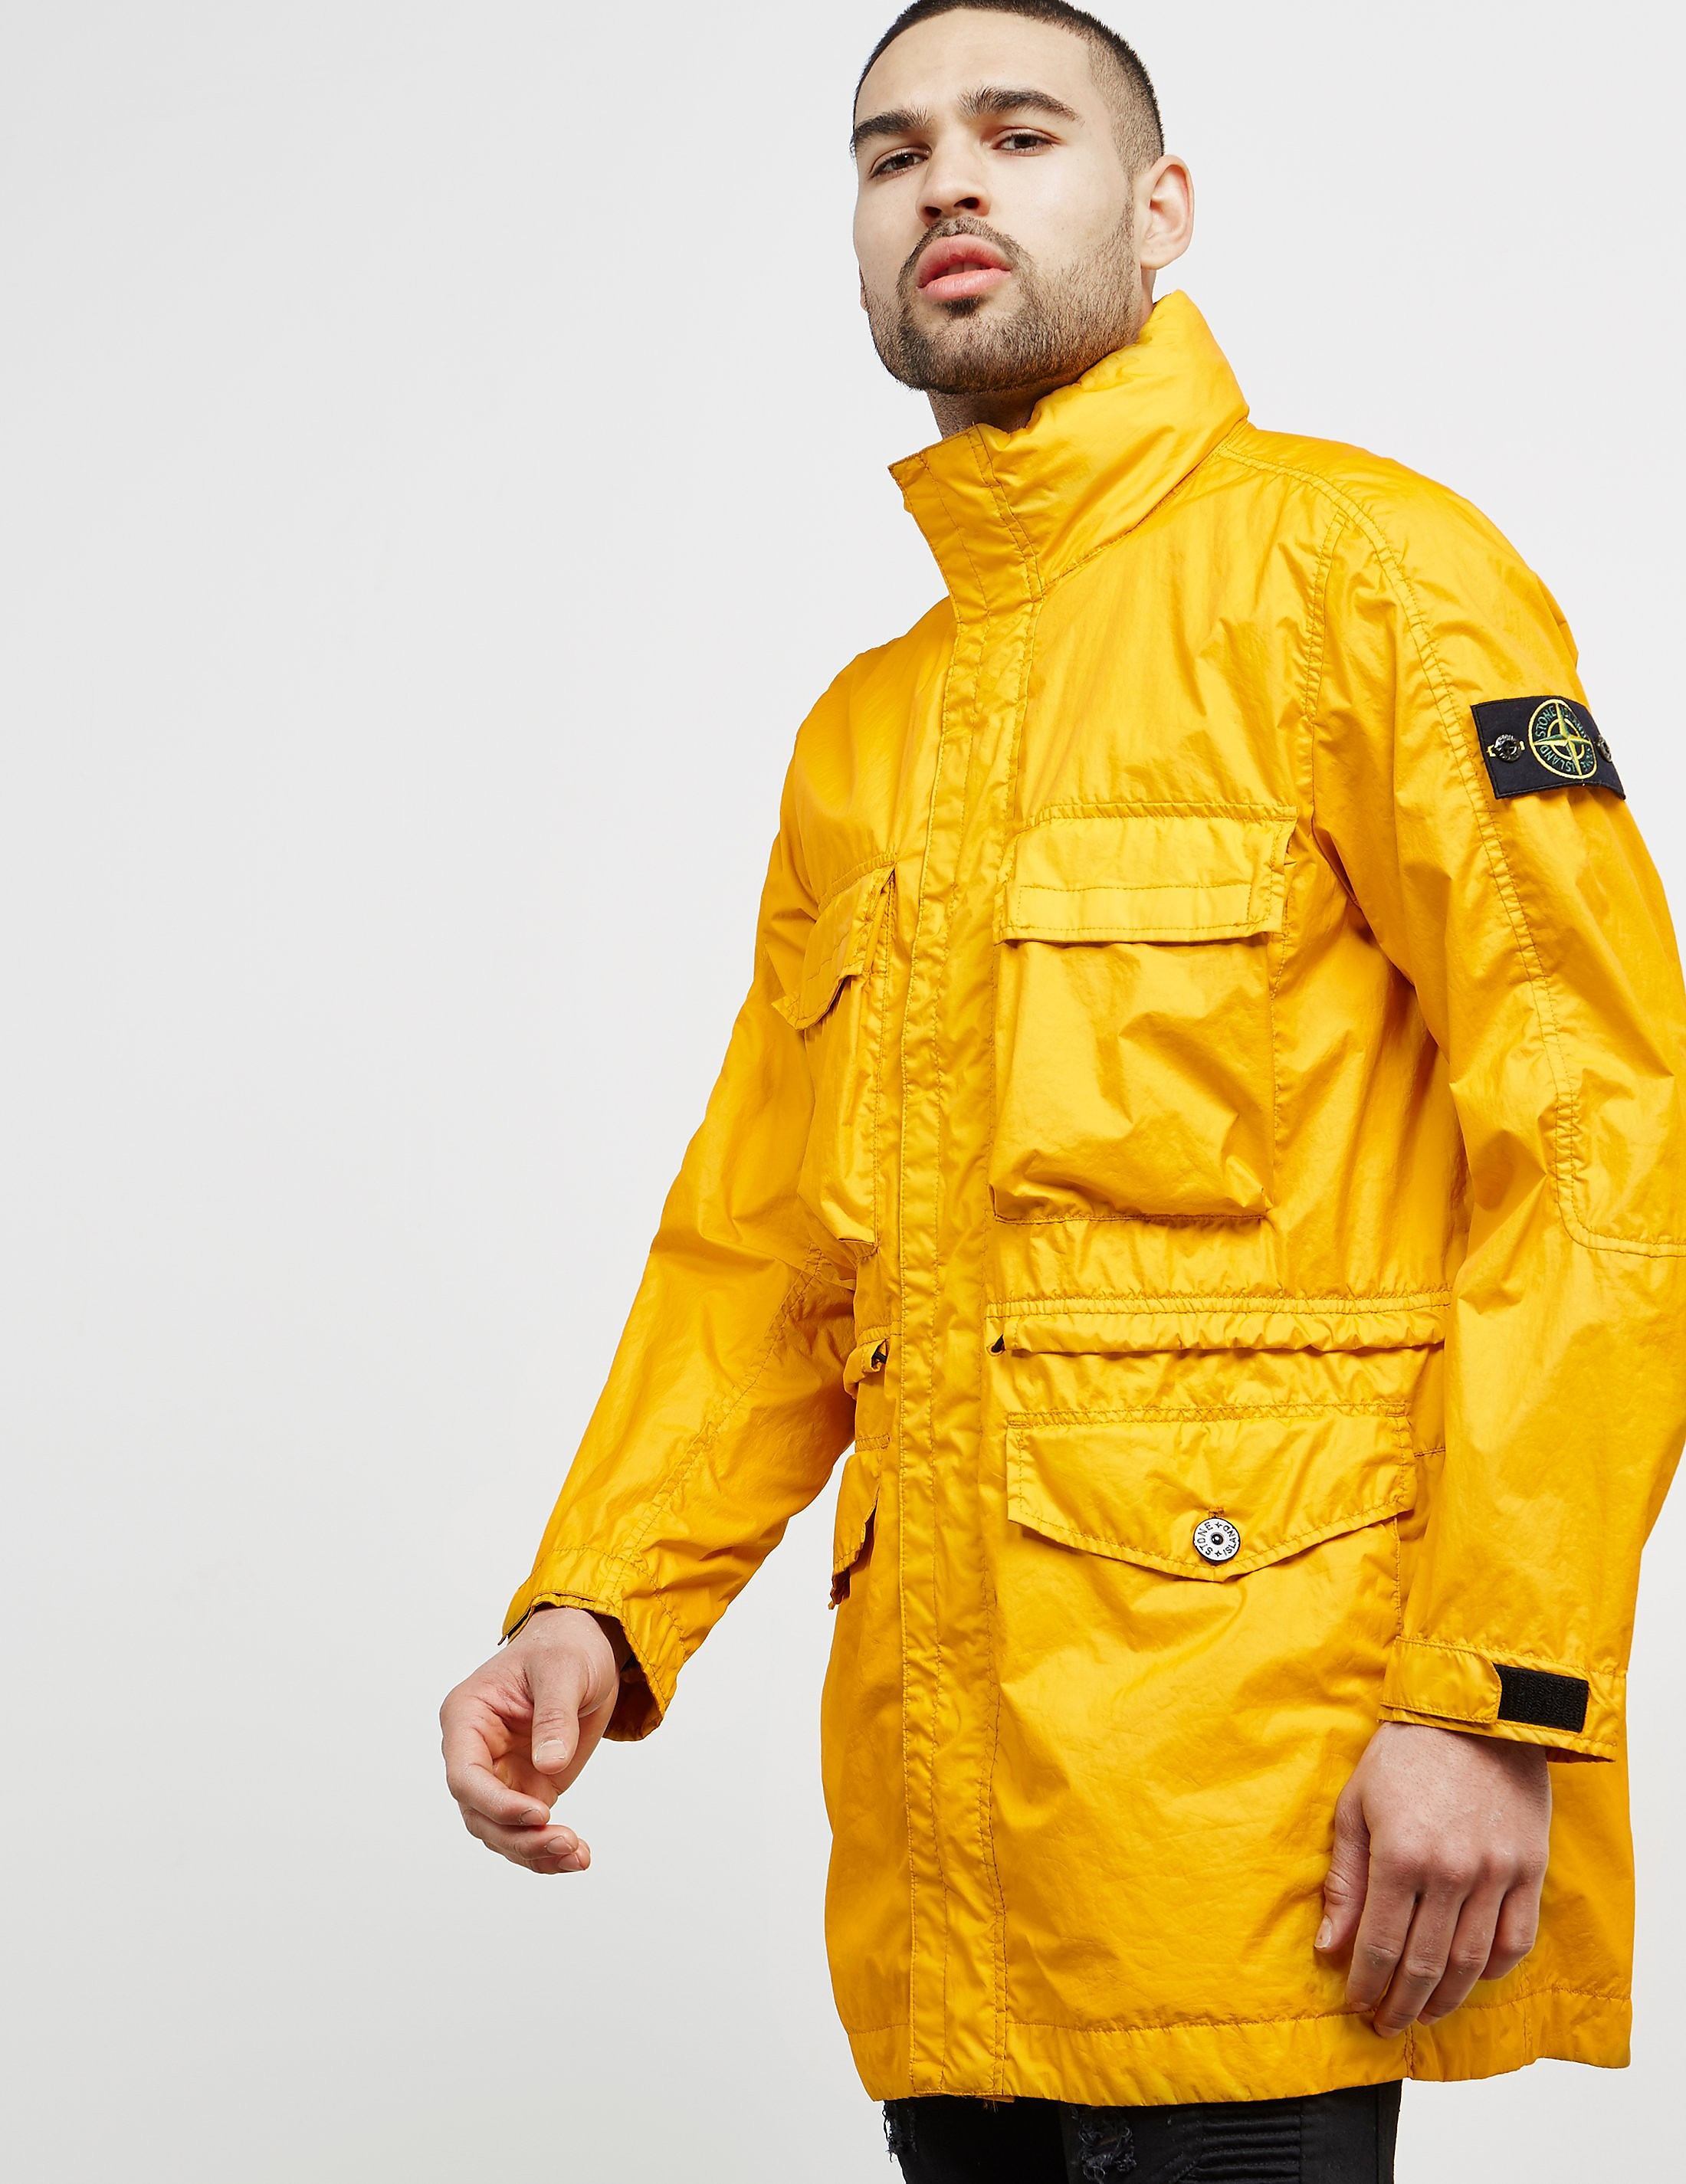 Stone Island Membrana 3L Padded Jacket - Online Exclusive